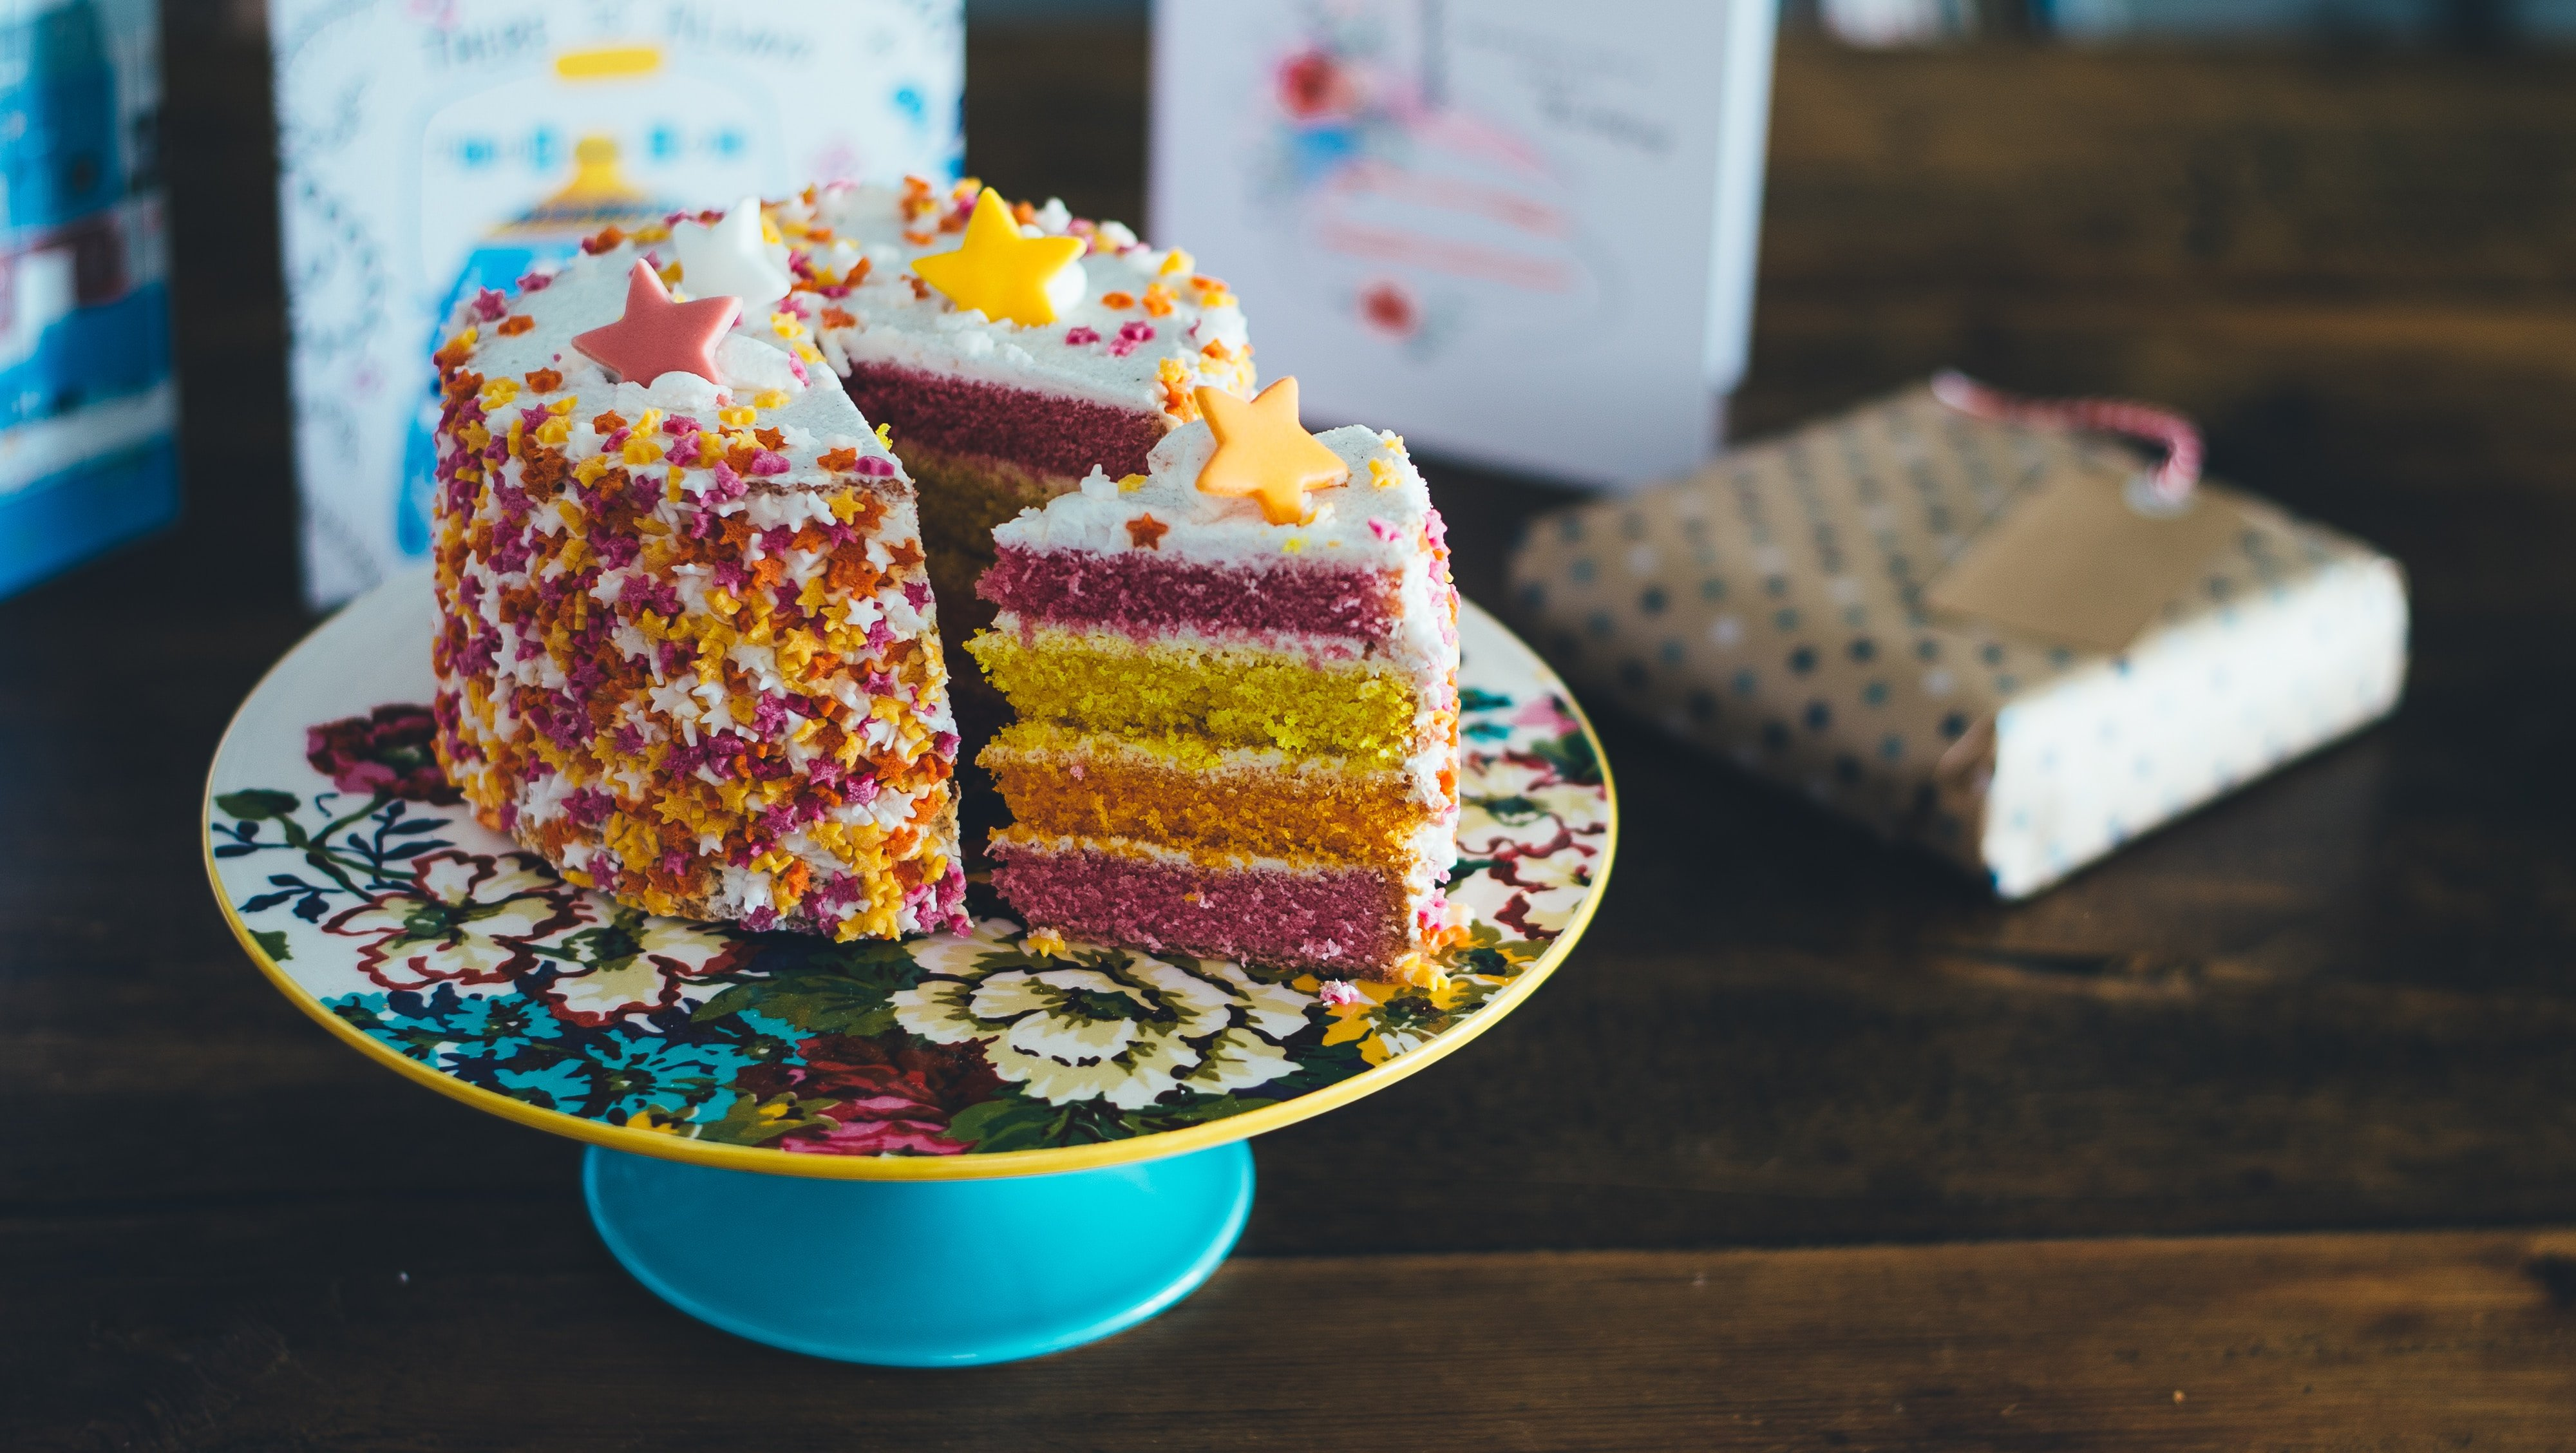 Layer cake of gratitude, rainbow flavors of cake on a blue cake pedestal